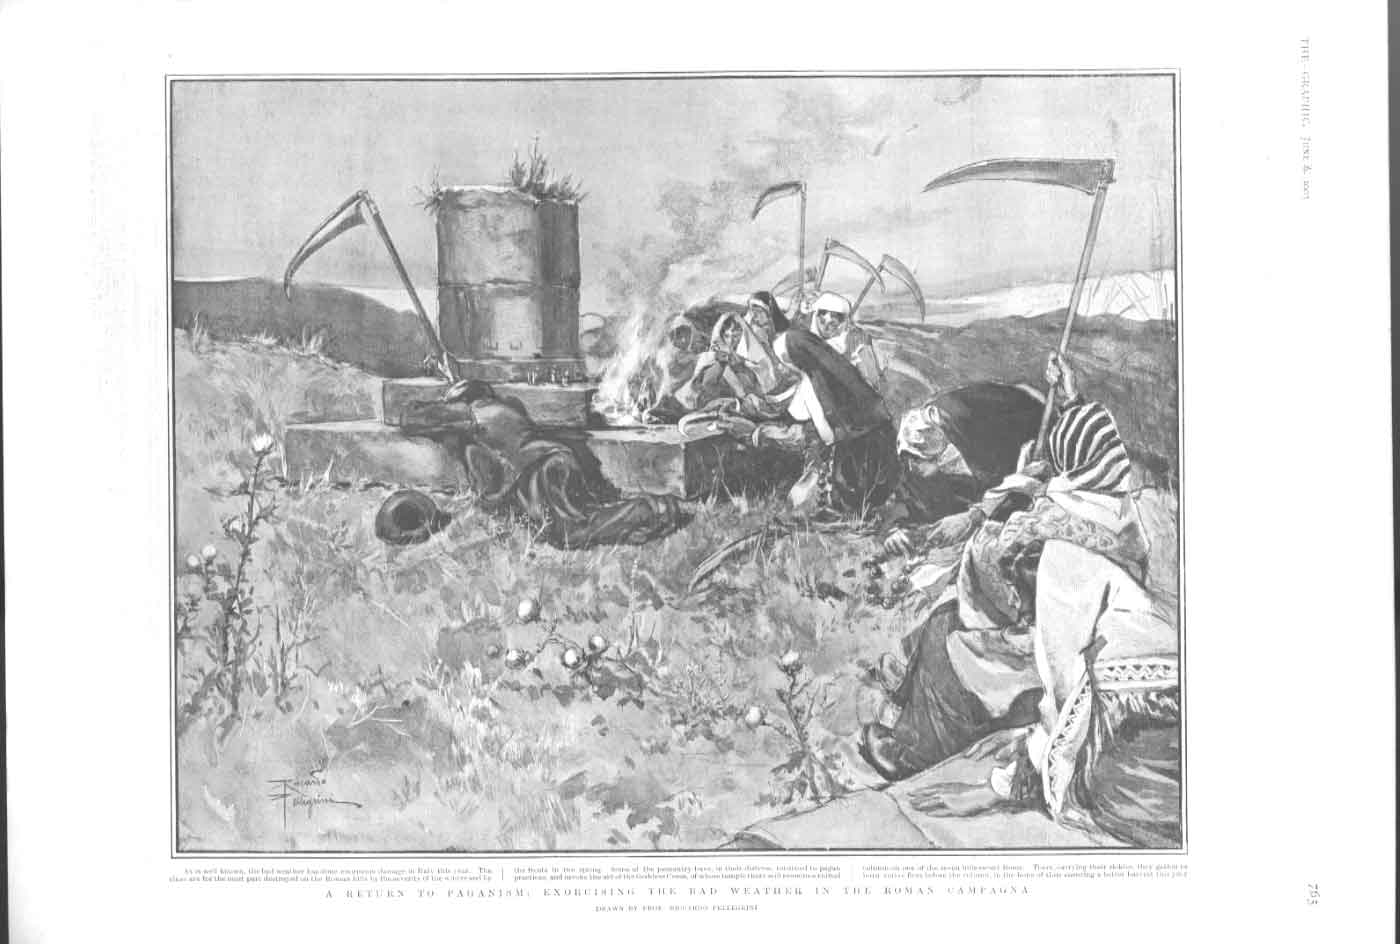 [Print Paganism Exorcising The Weather On Roman Campagna 1903 3765A416 Old Original]